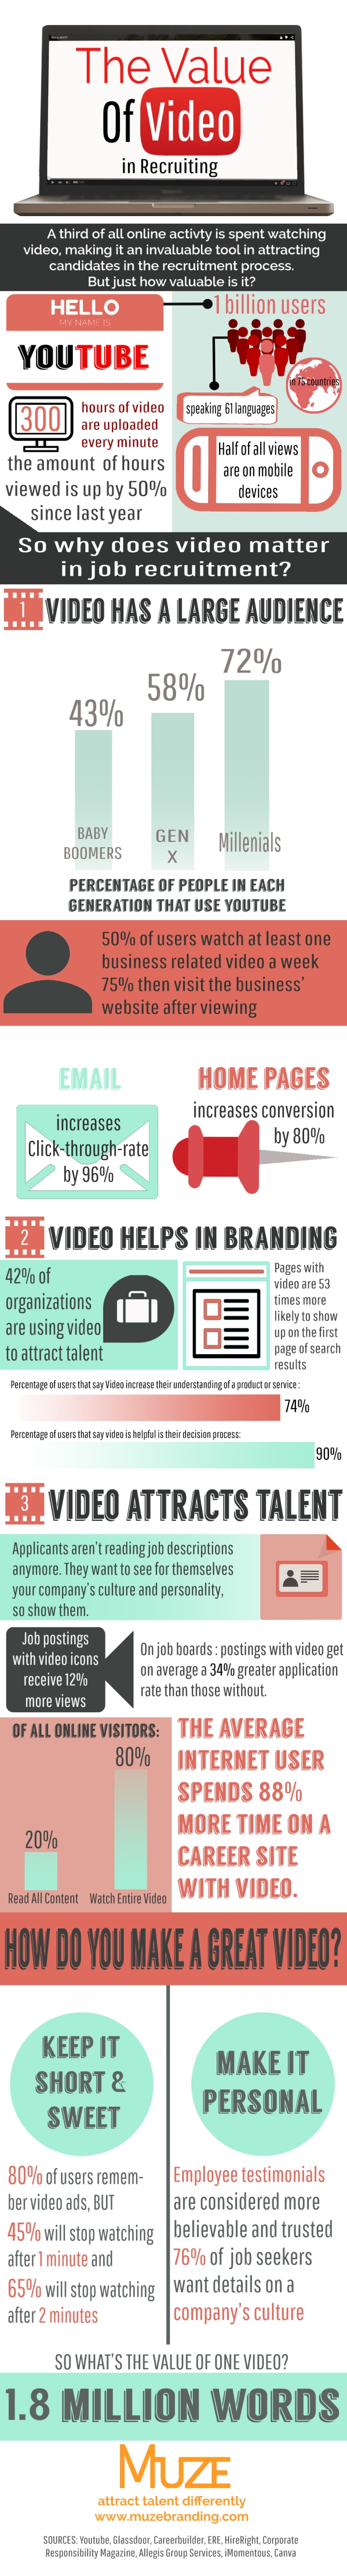 video infographic final version